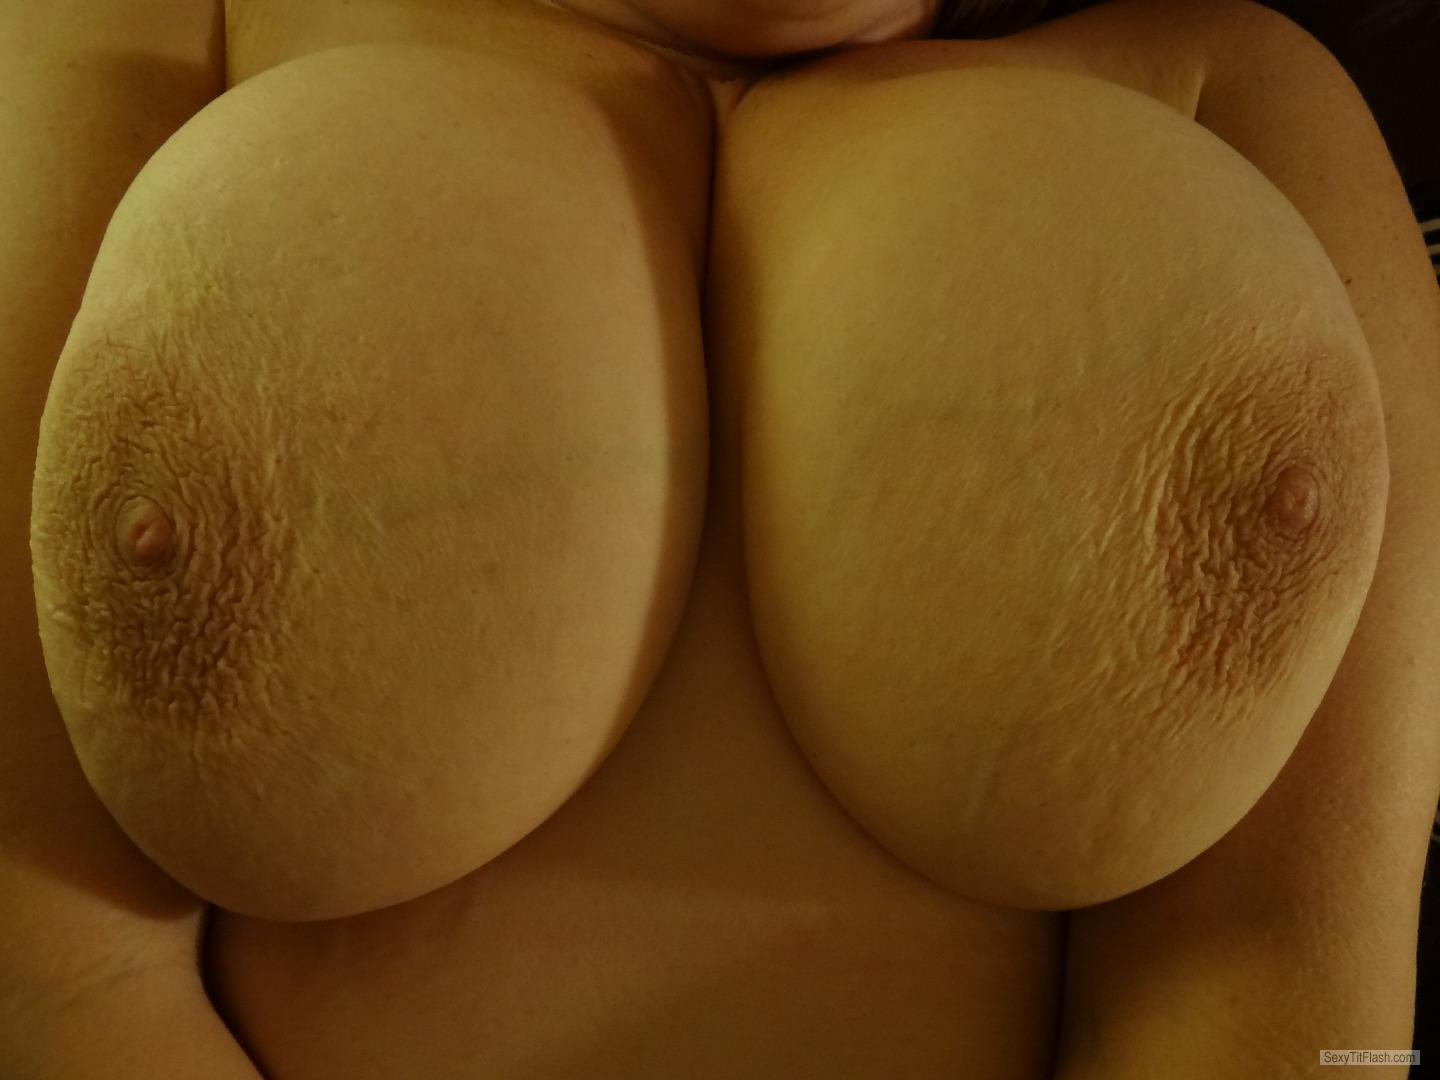 My Very big Tits Selfie by Banana Valley